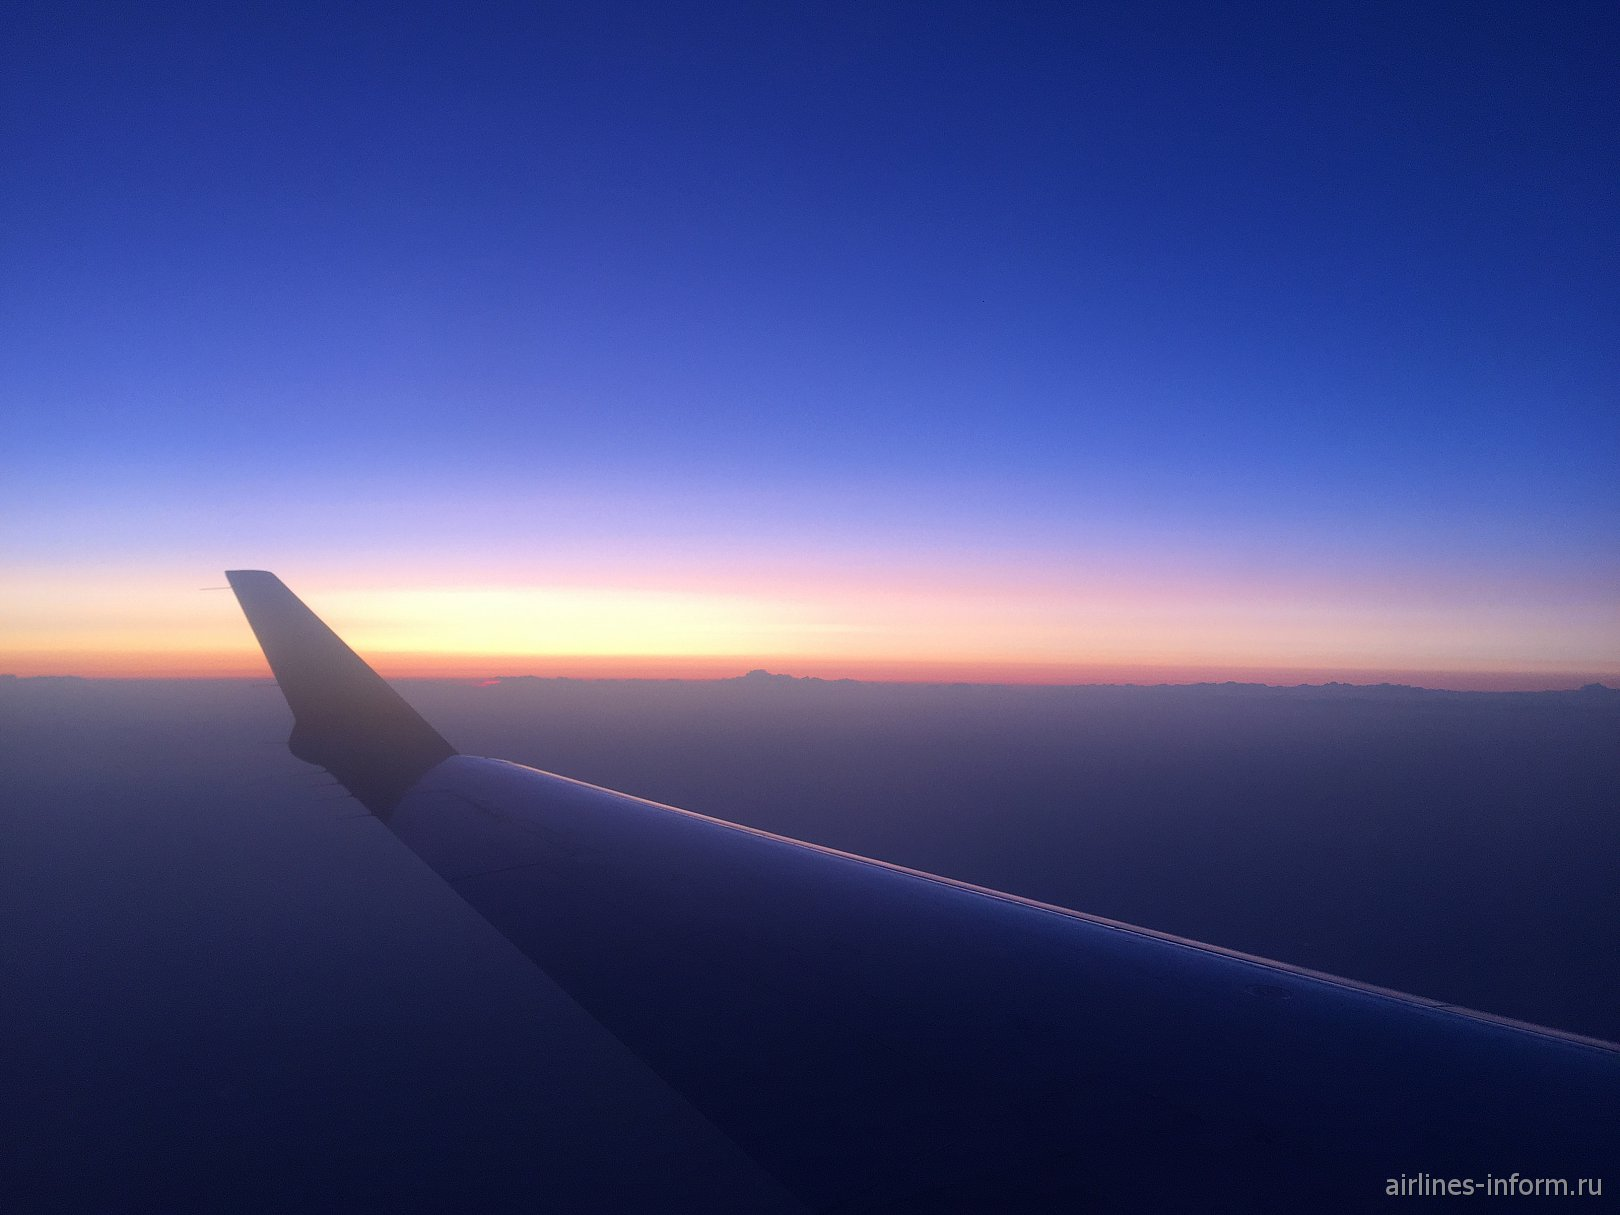 First in Flight: Charlotte,NC (CLT) - Washington,DC (Dulles; IAD) с Mesa Airlines под брендом United Express